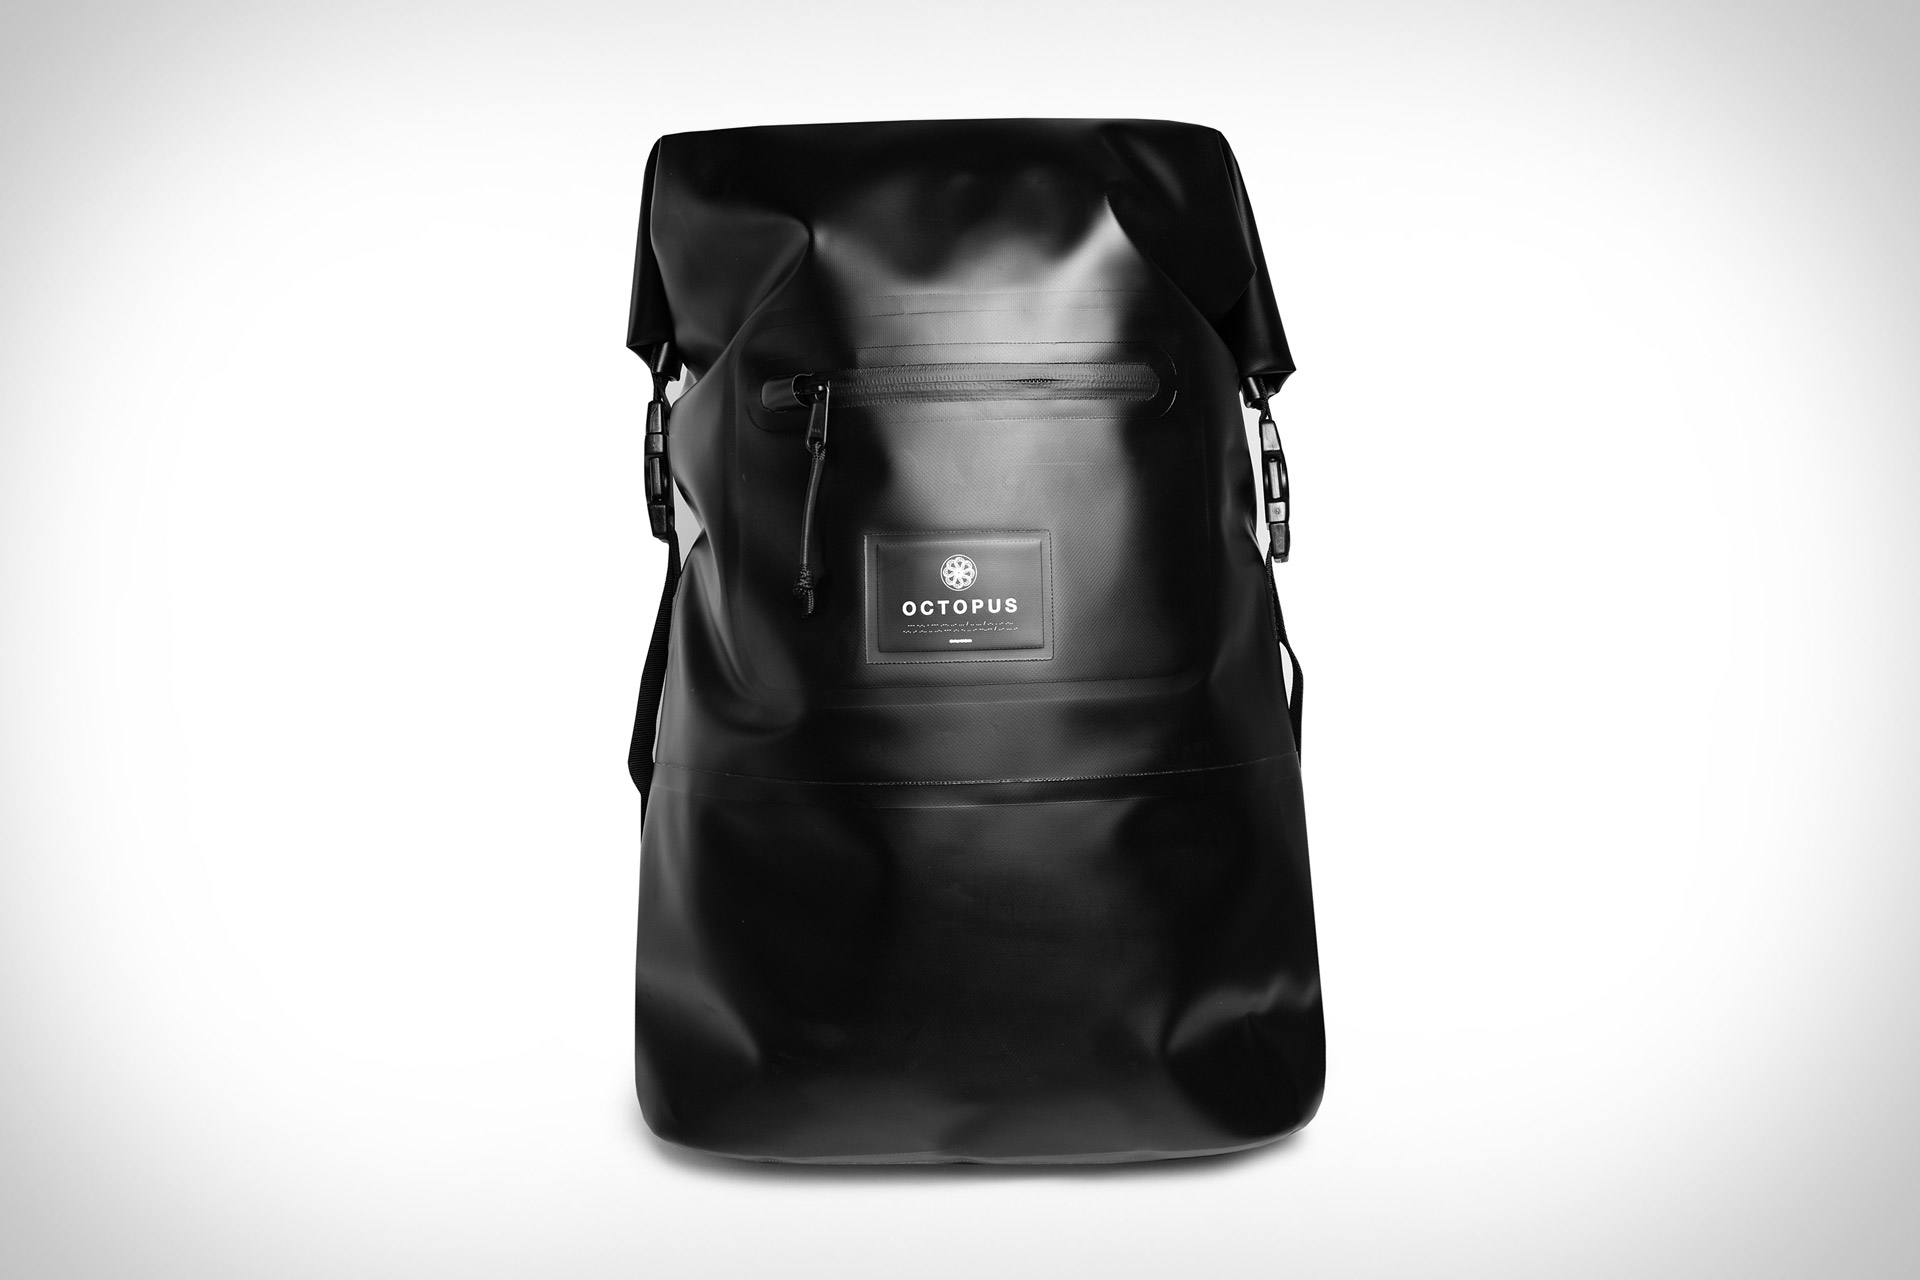 Octopus Airlock Backpack